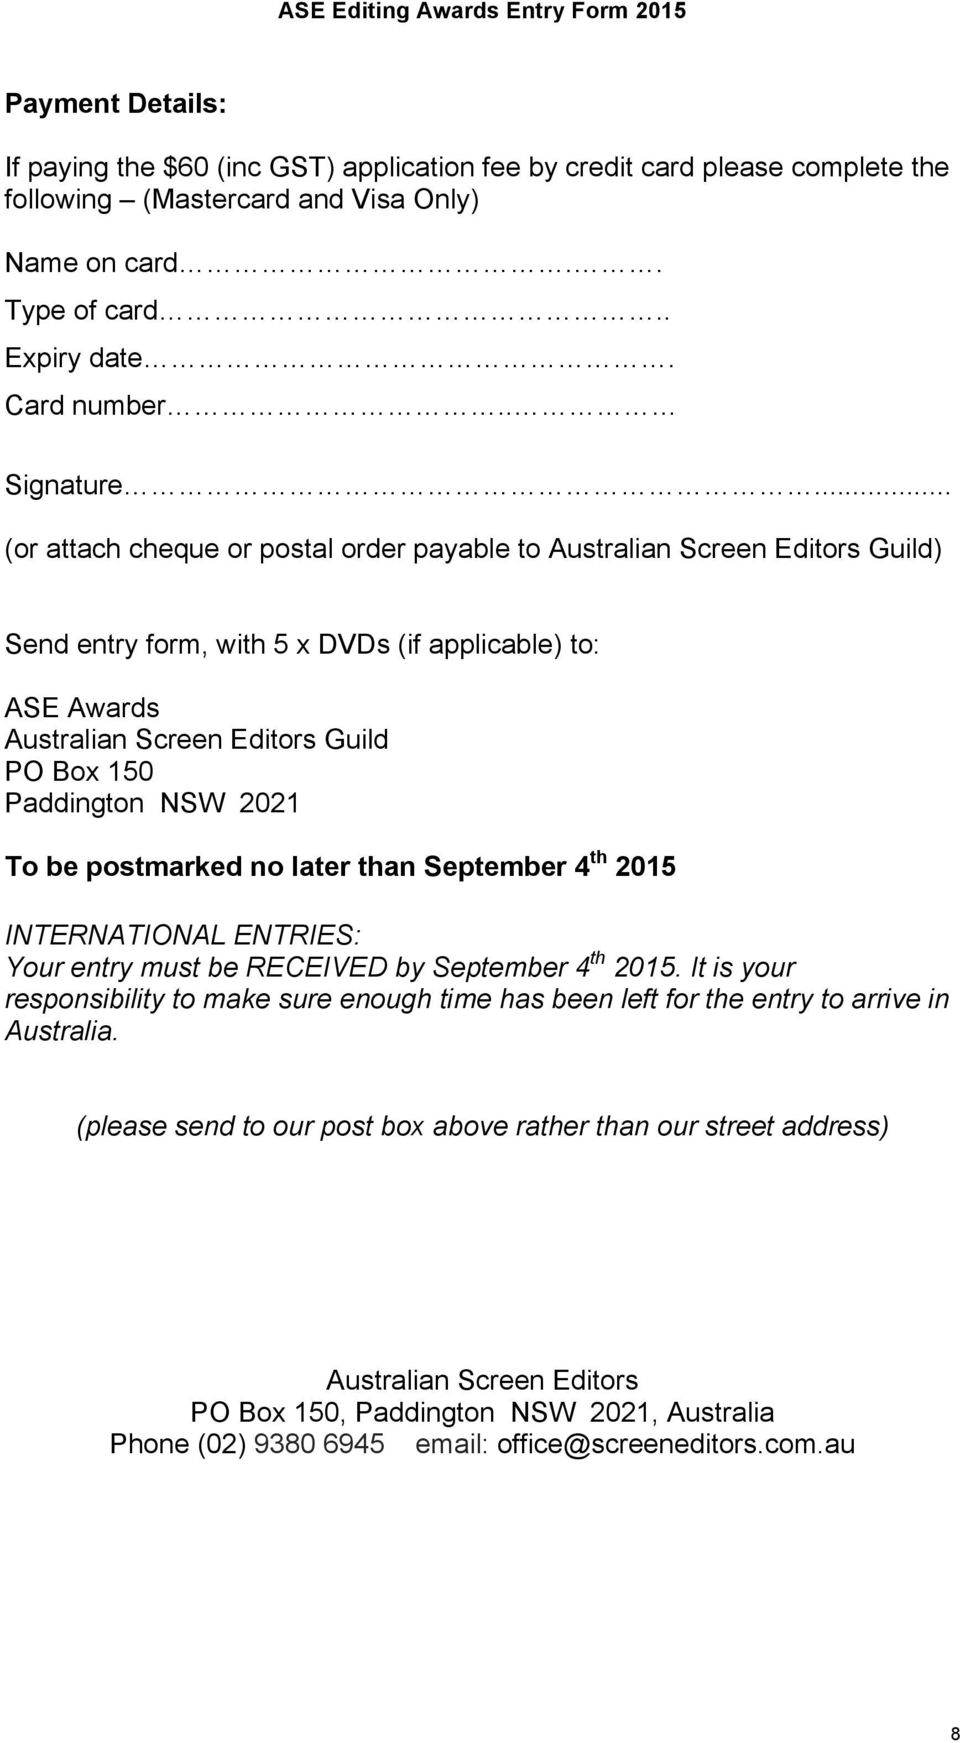 NSW 2021 To be postmarked no later than September 4 th 2015 INTERNATIONAL ENTRIES: Your entry must be RECEIVED by September 4 th 2015.